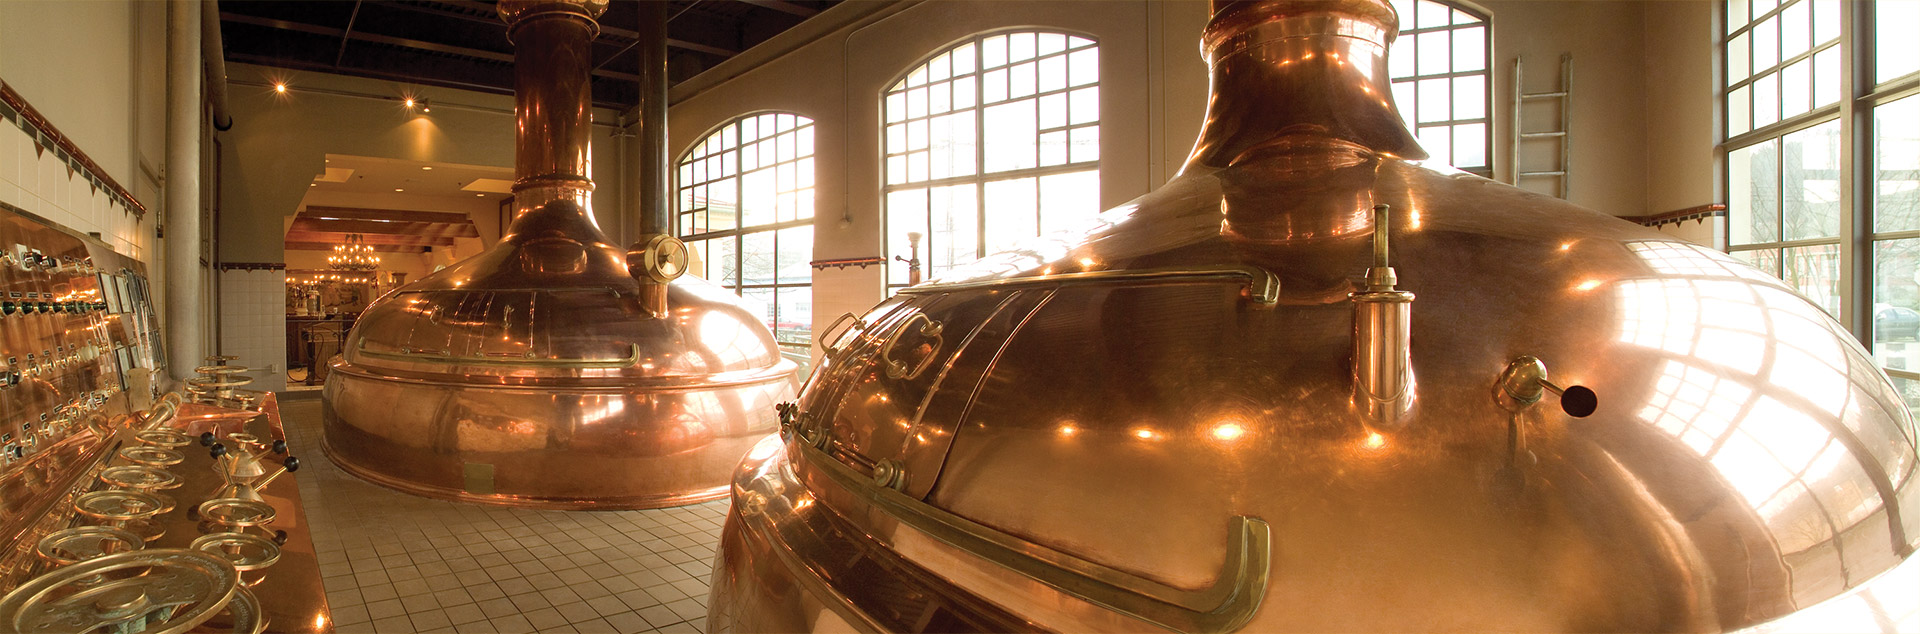 about portland brewing co